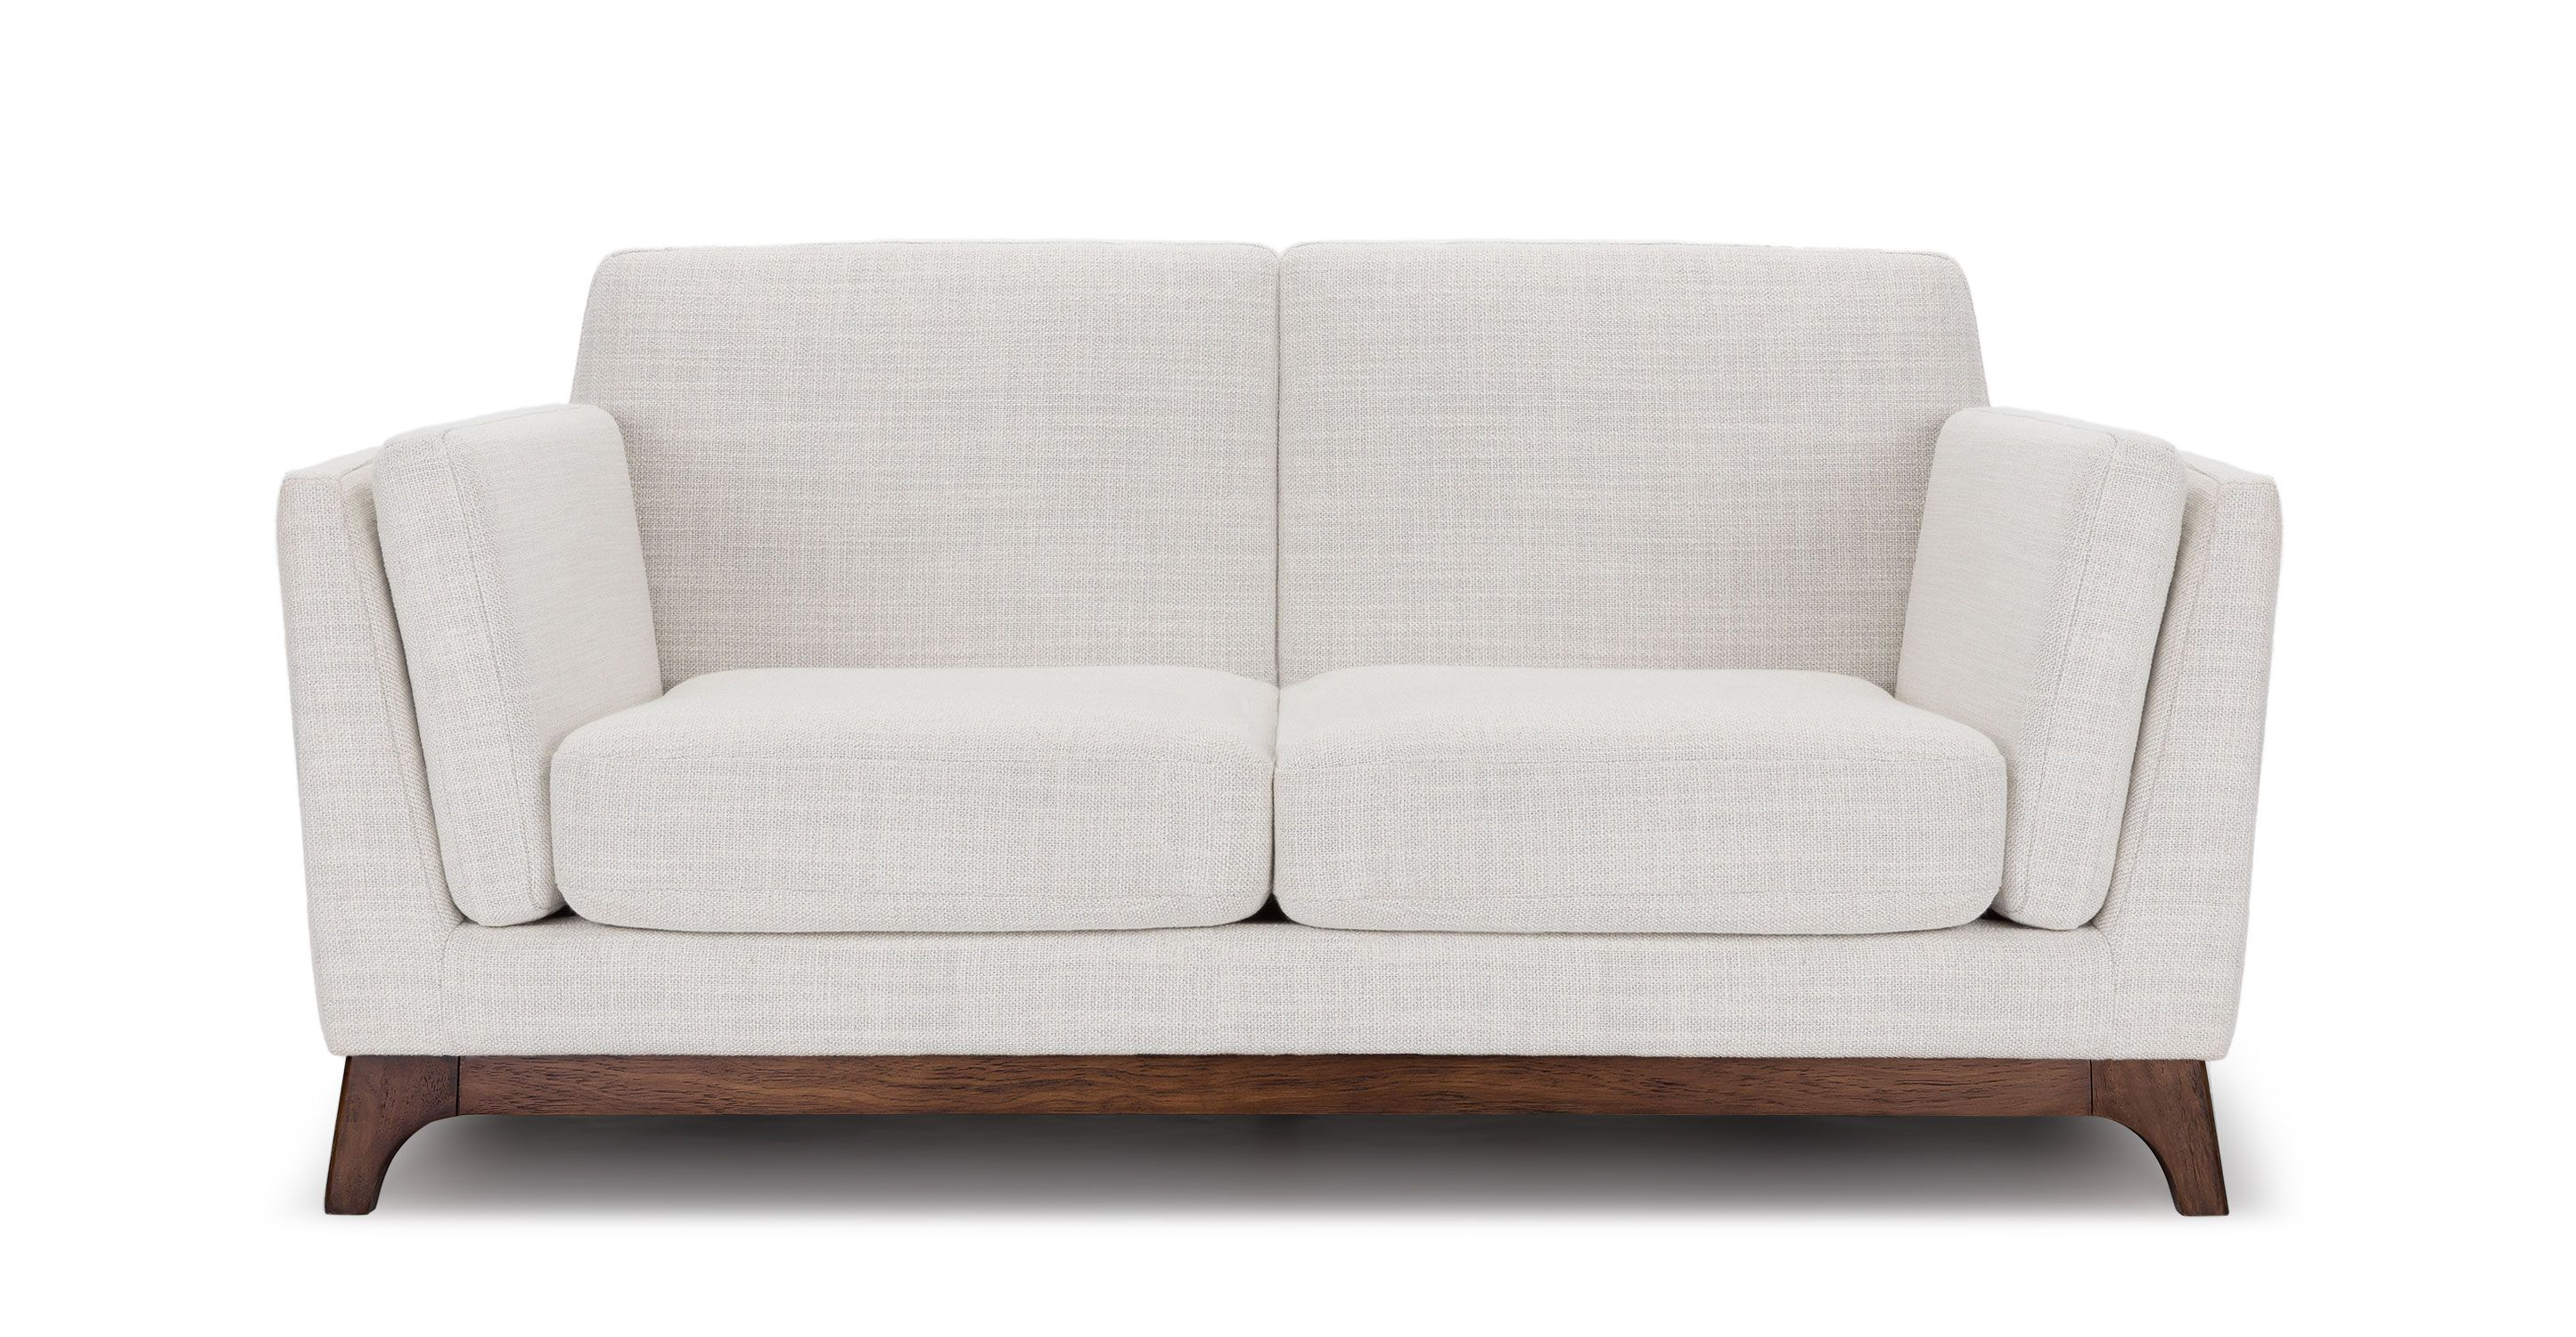 White Fabric Loveseat With Solid Wood Legs Article Ceni Modern